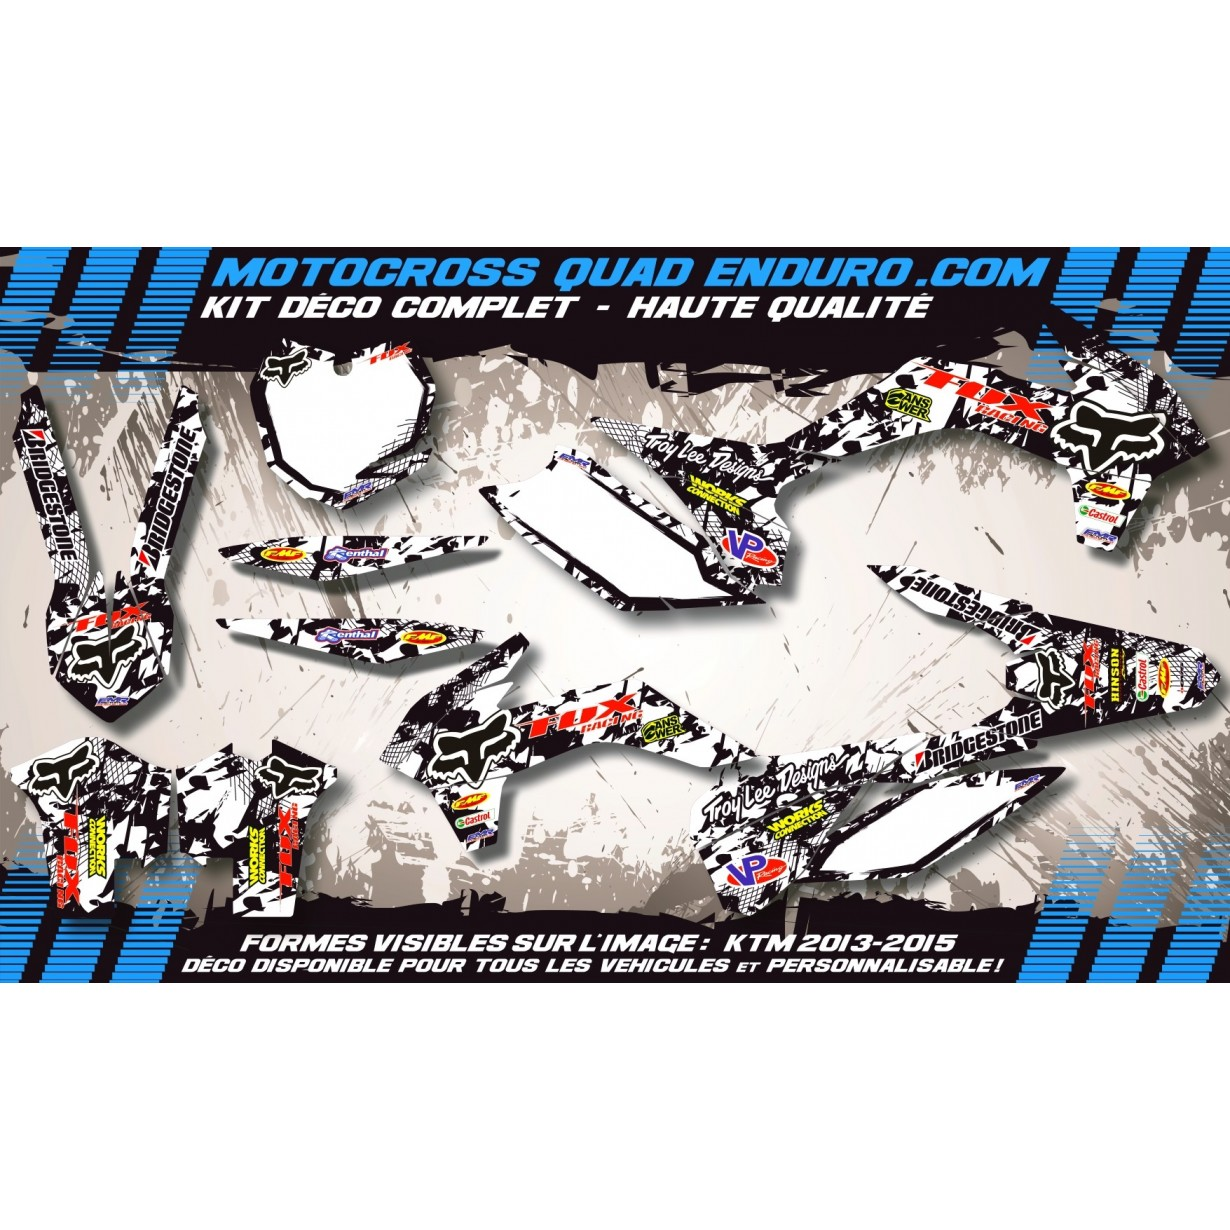 KIT DÉCO Perso 50 SX 09-15 FOX MA9F